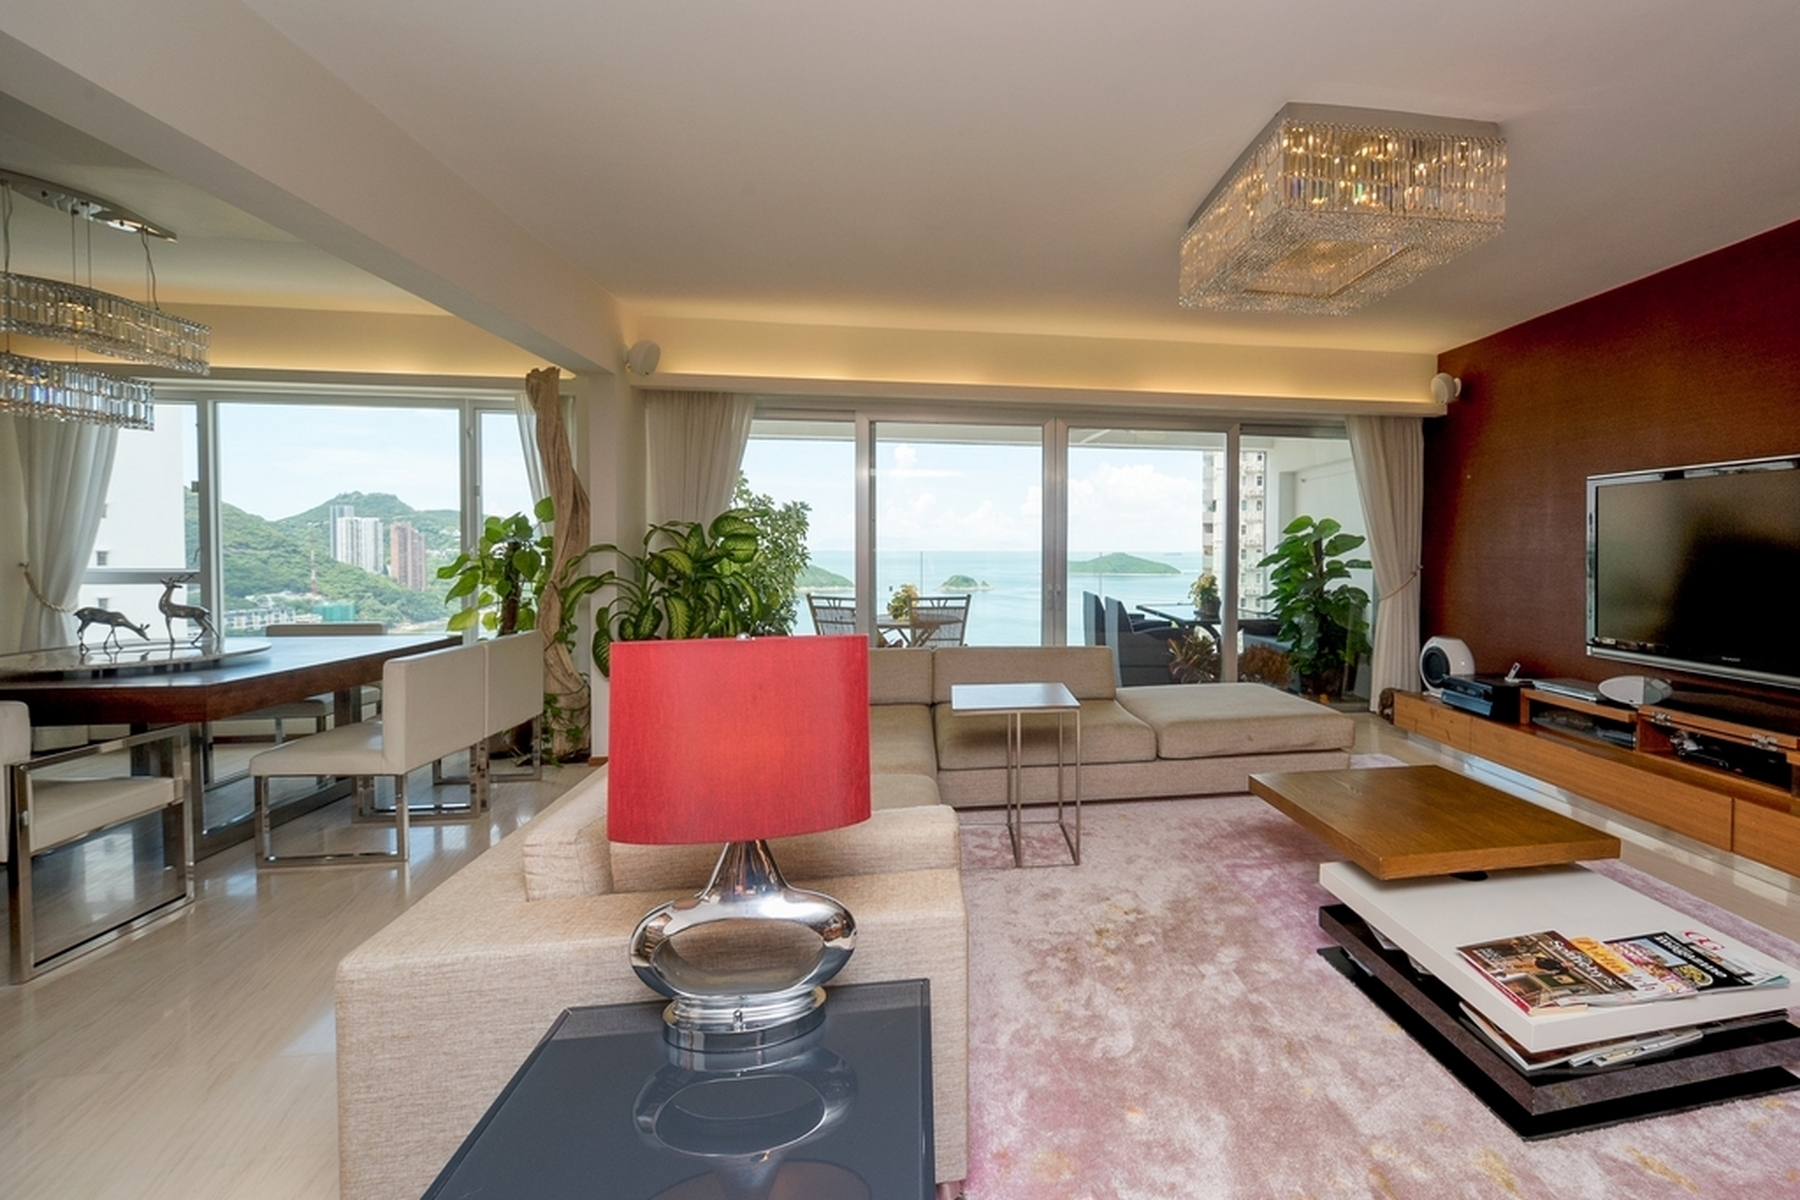 Apartment for Sale at Repulse Bay Garden - Block 03-04 Repulse Bay, Hong Kong